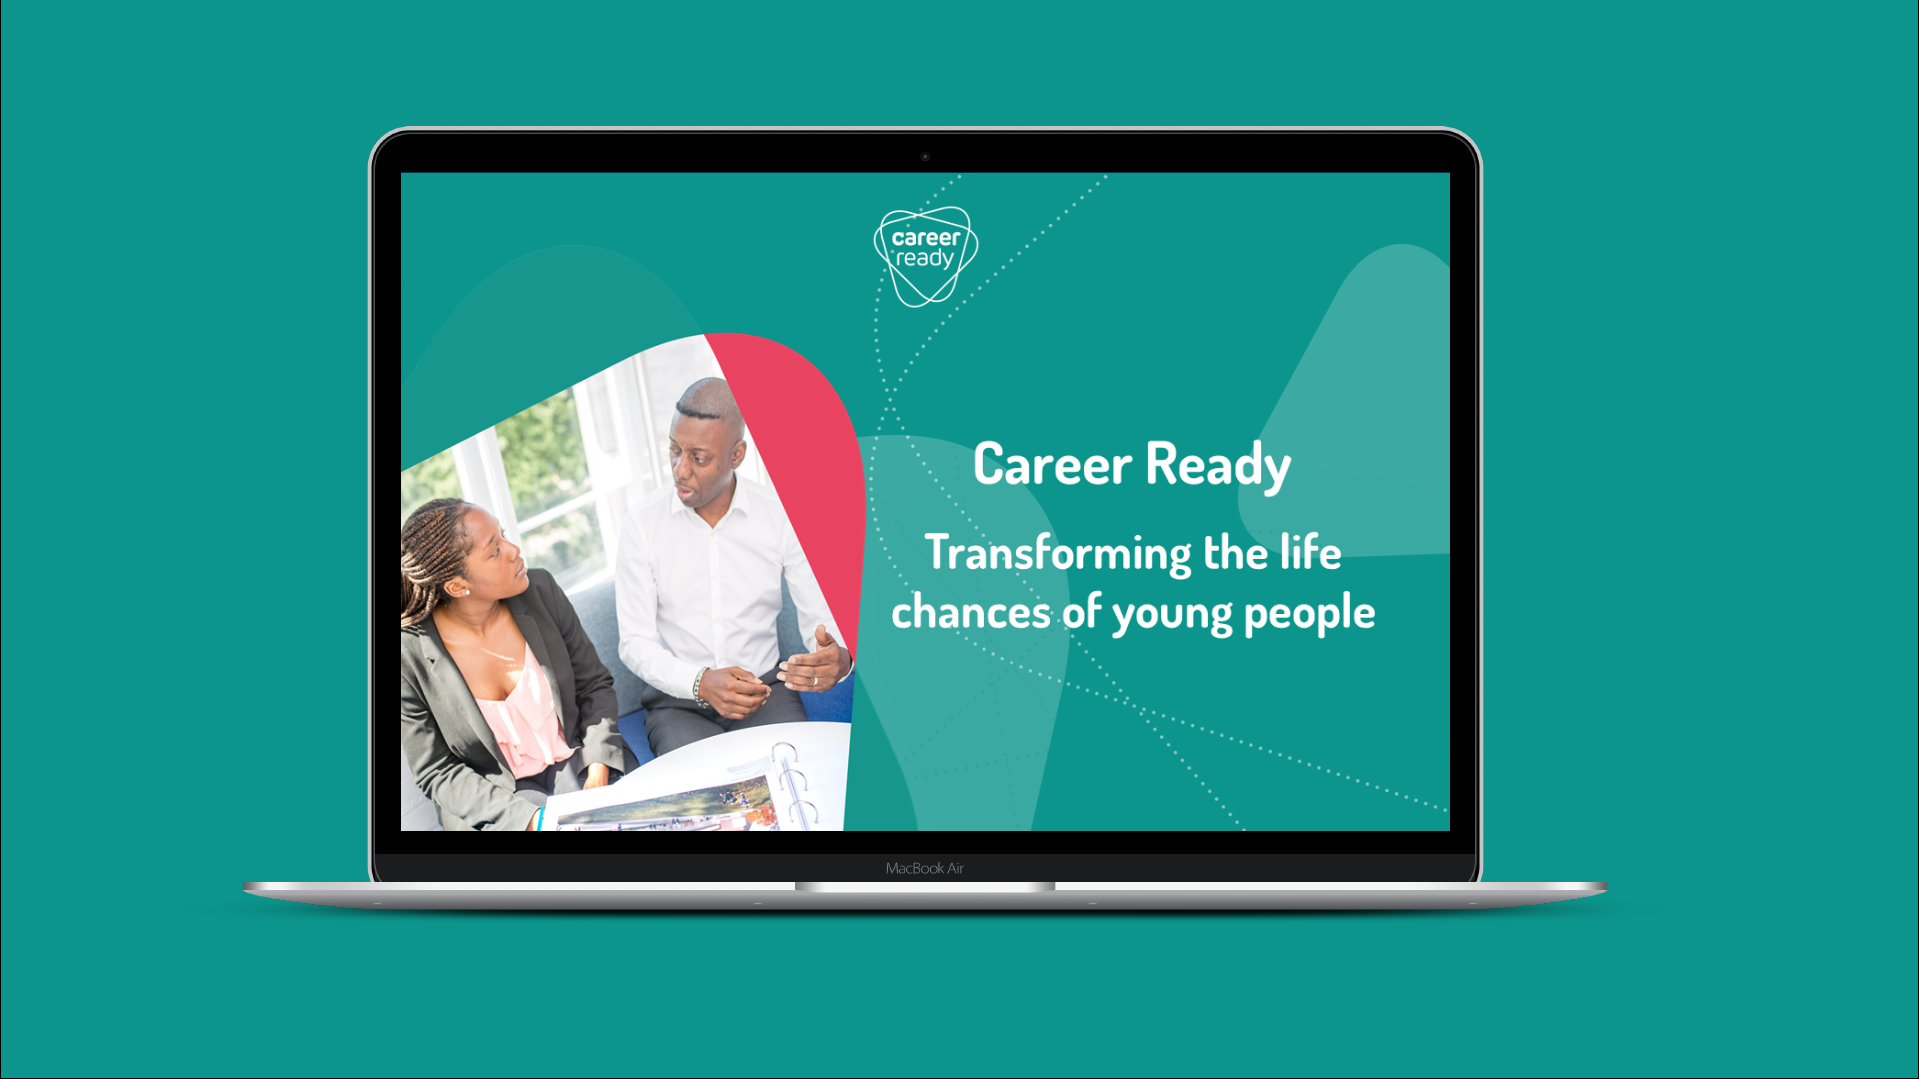 Career Ready Laptop Image